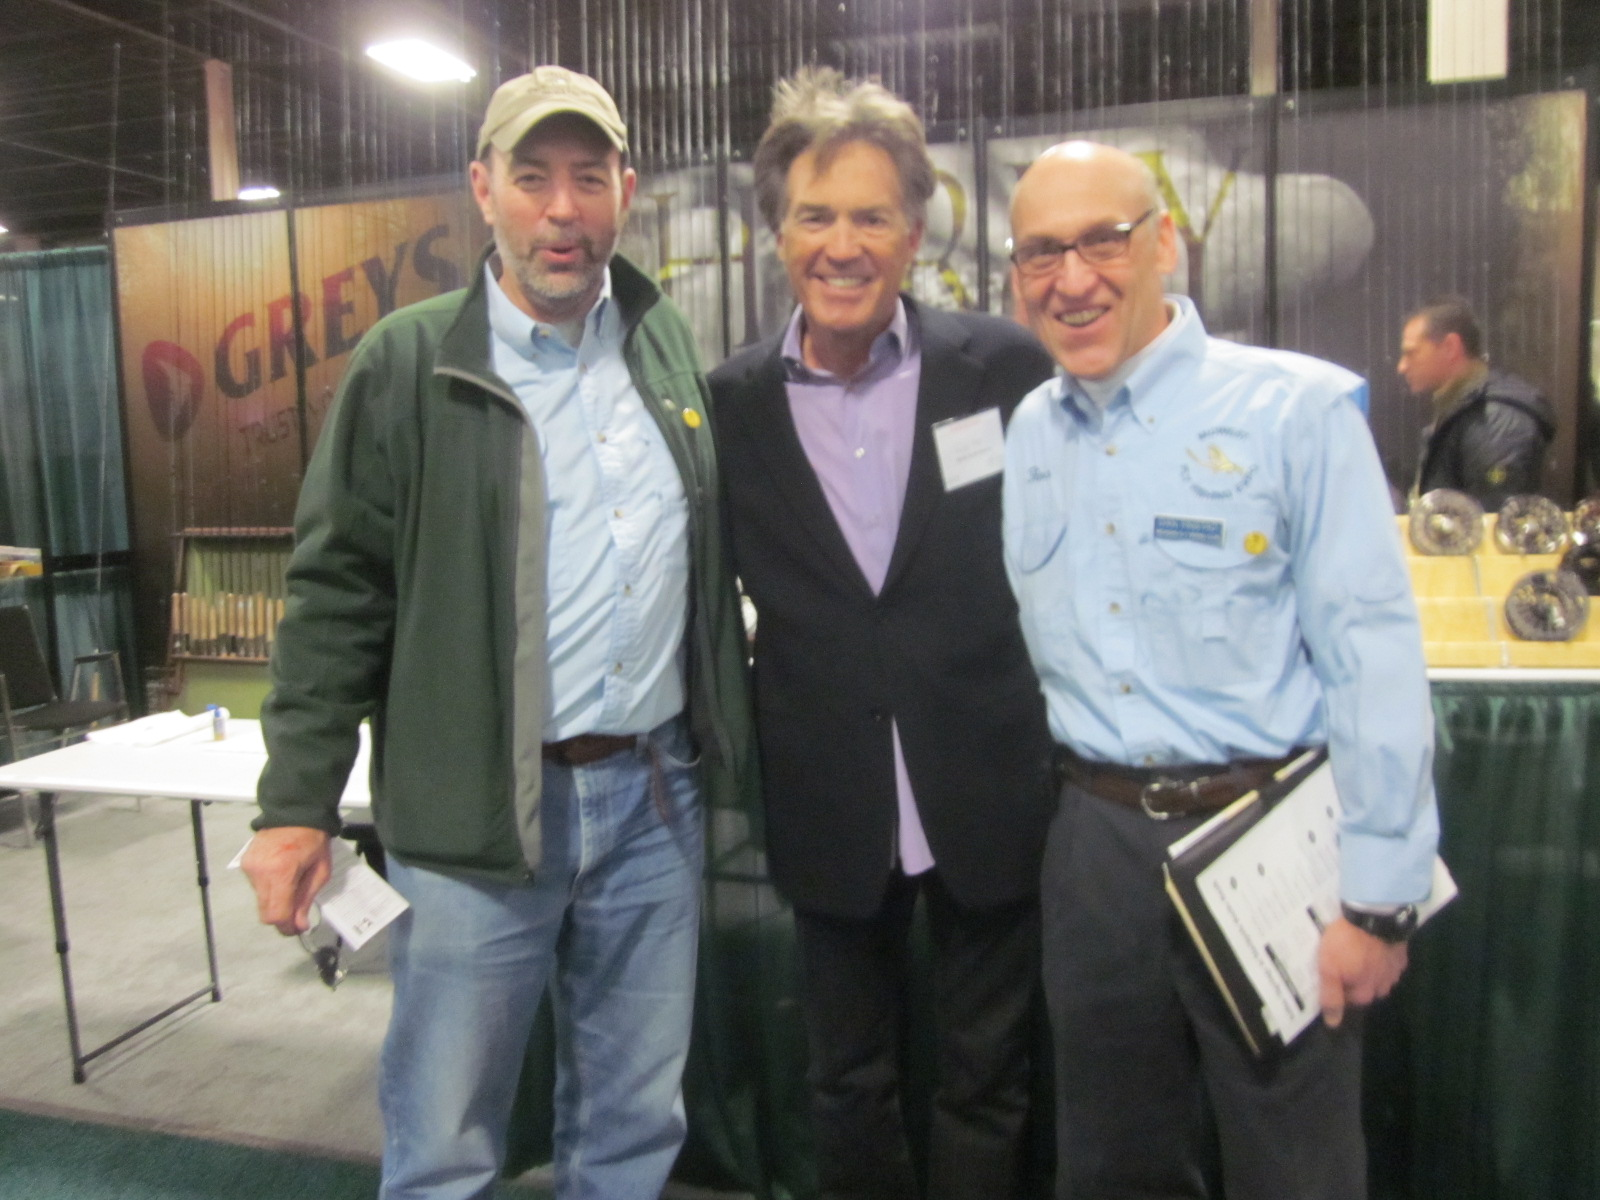 Me, Andy Mill, and my friend Dan